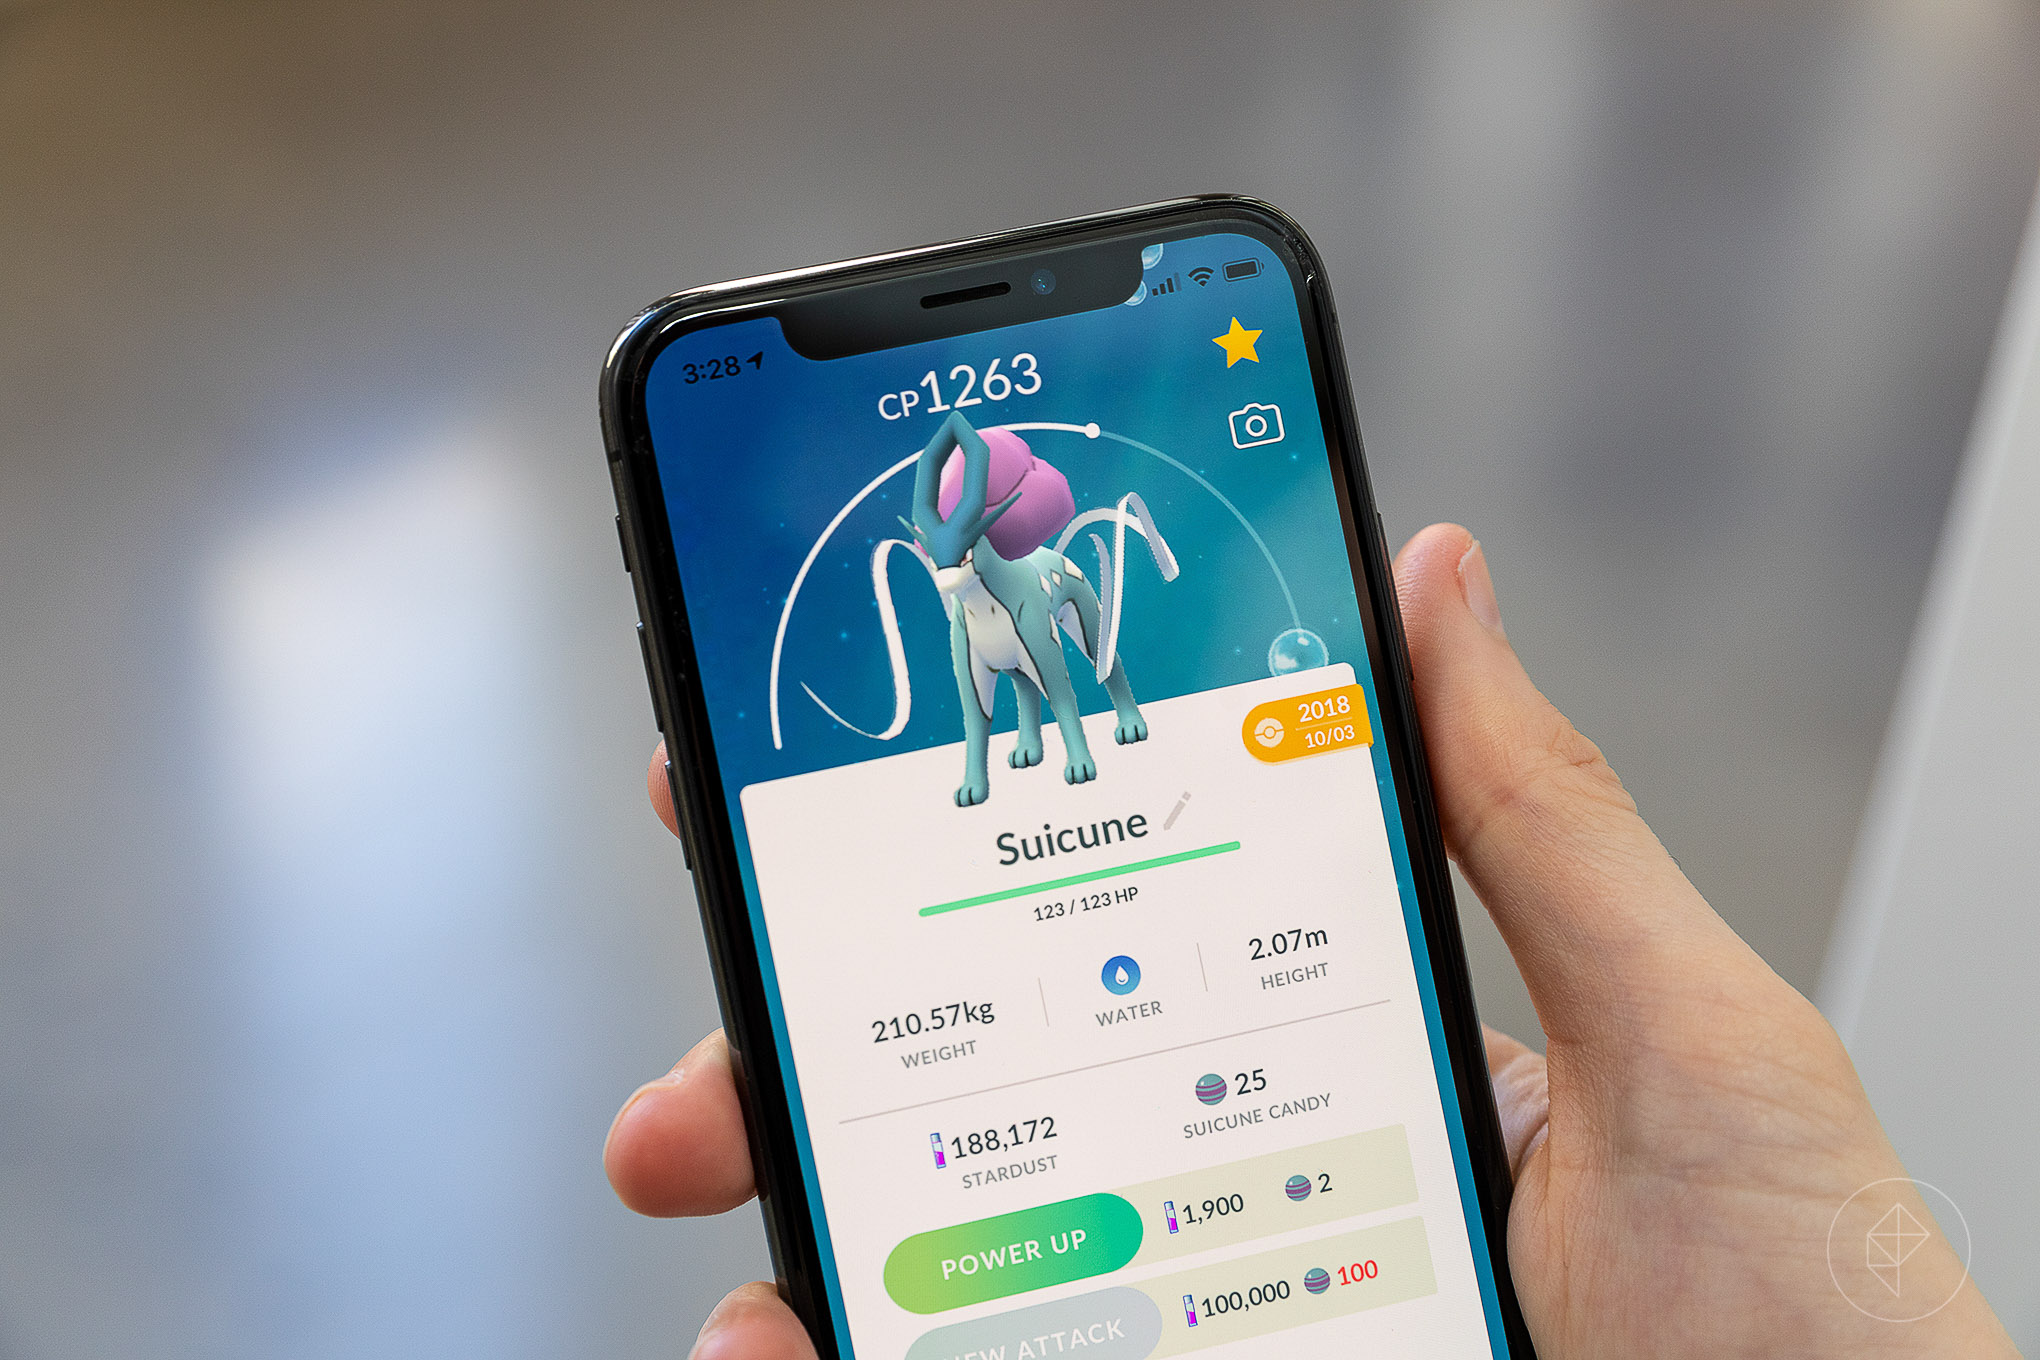 Pokémon Go Suicune raid guide: counters, best movesets, and start times